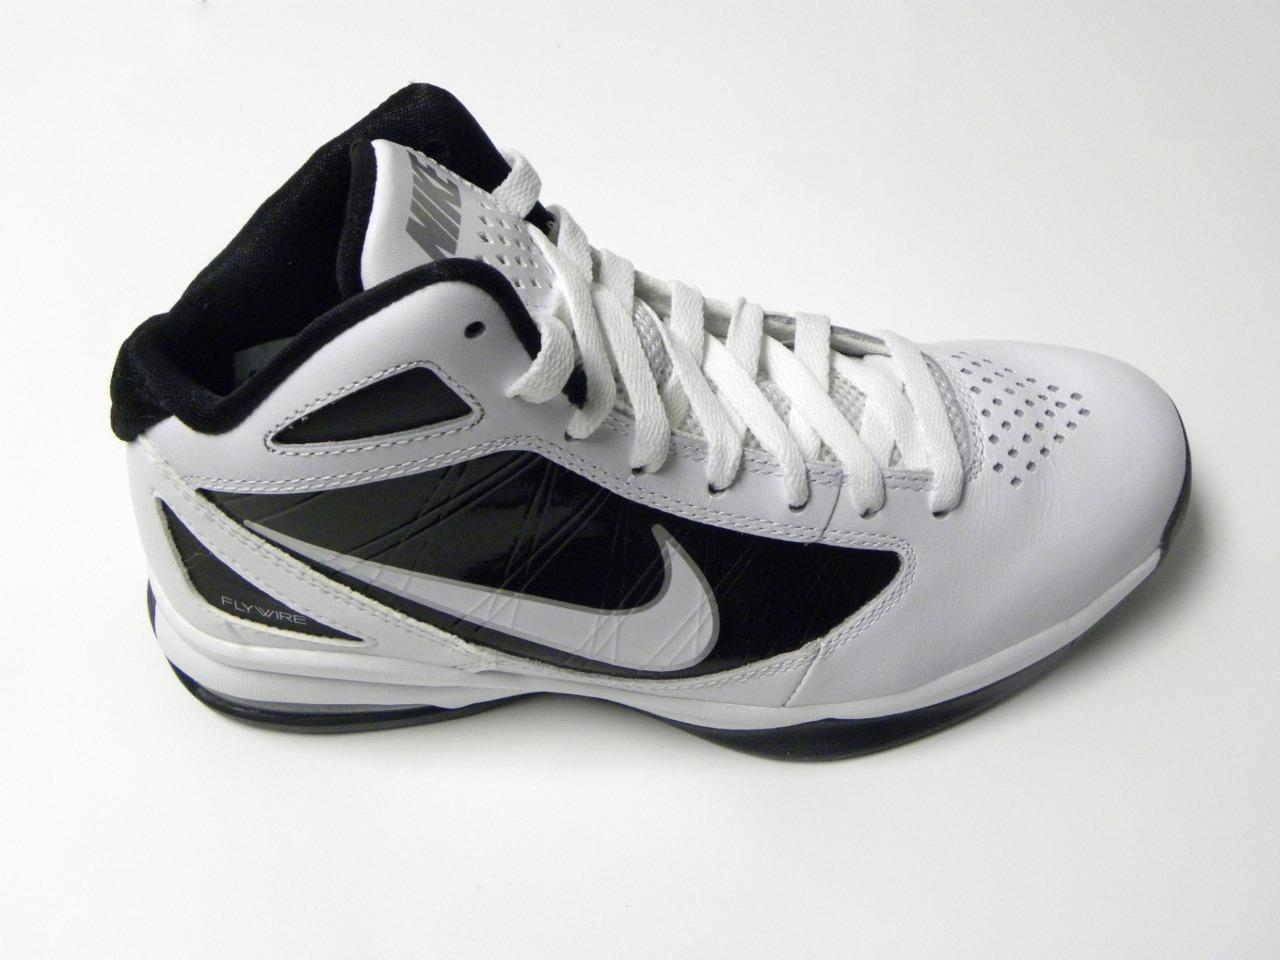 best authentic 035ed 08c55 NEW WOMENS NIKE AIR MAX DESTINY TB SHOES WHITE   BLACK VARIOUS SIZES